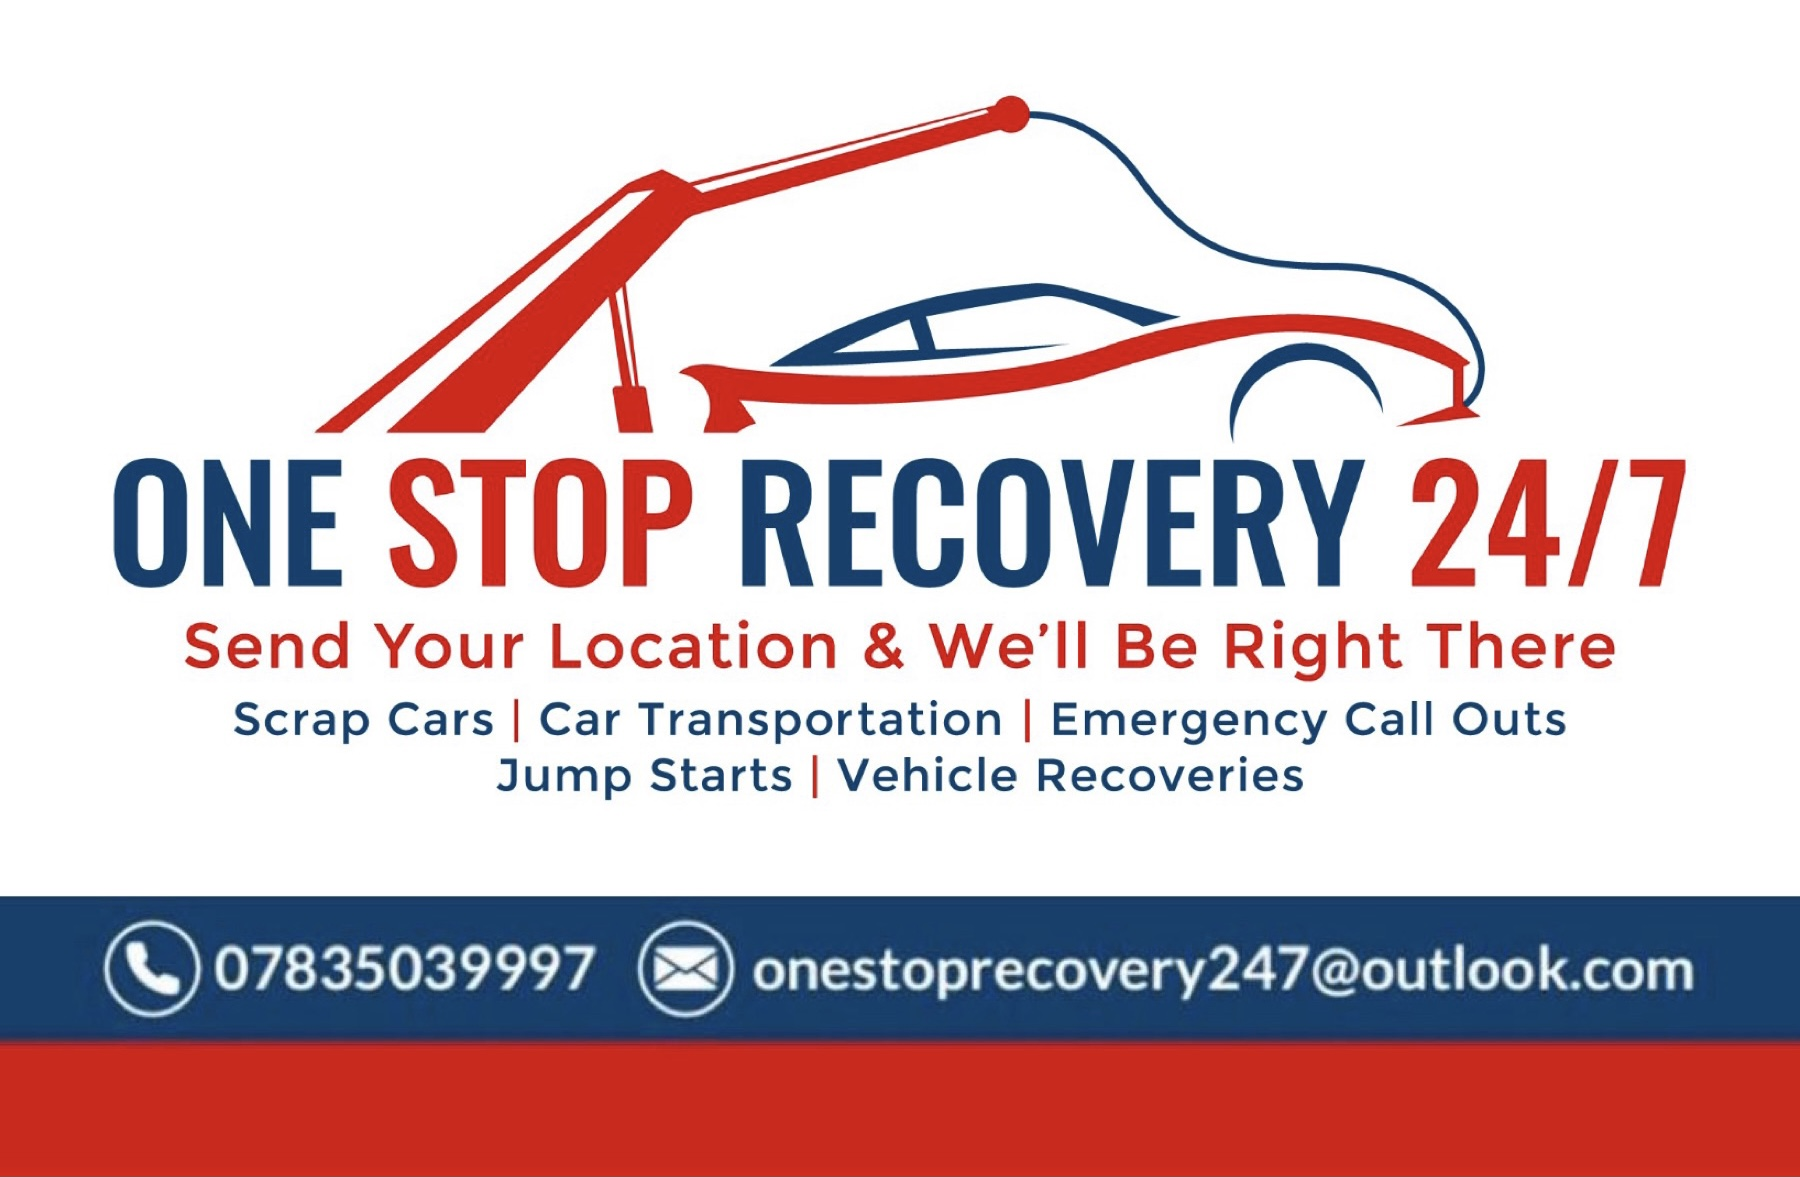 One Stop Recovery 24/7